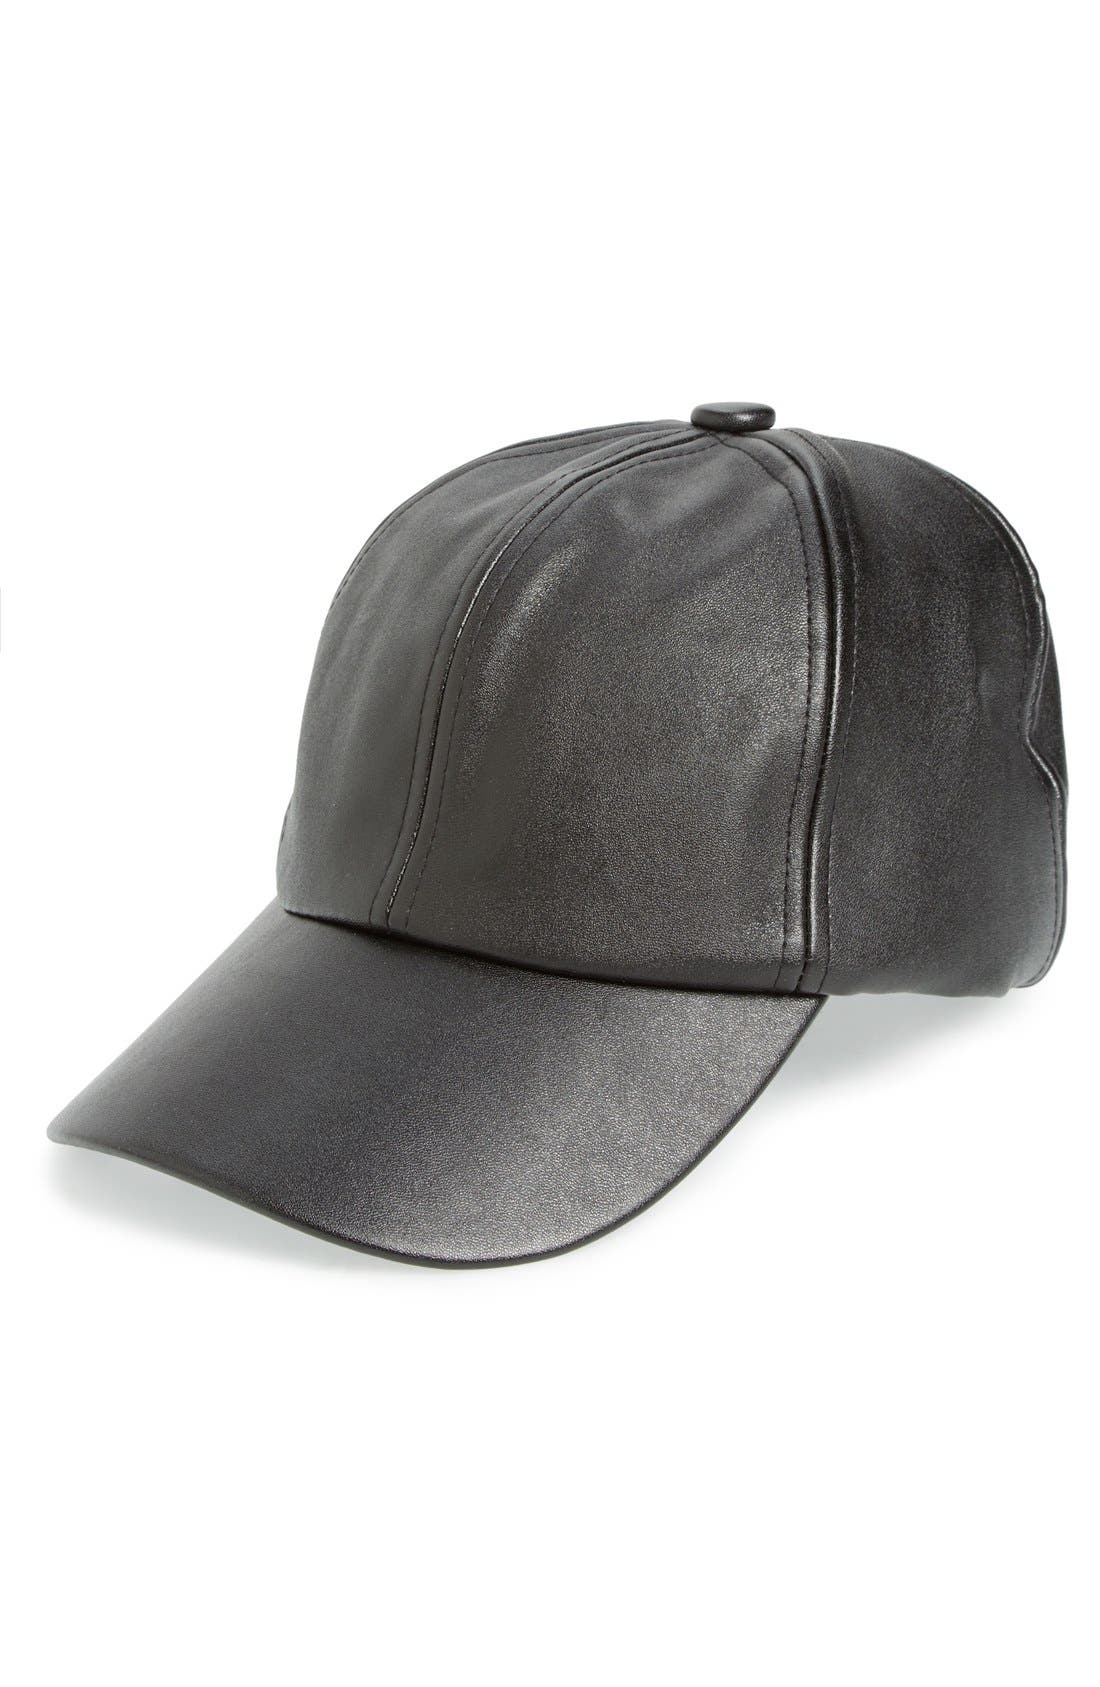 Main Image - Amici Accessories Faux Leather Ball Cap